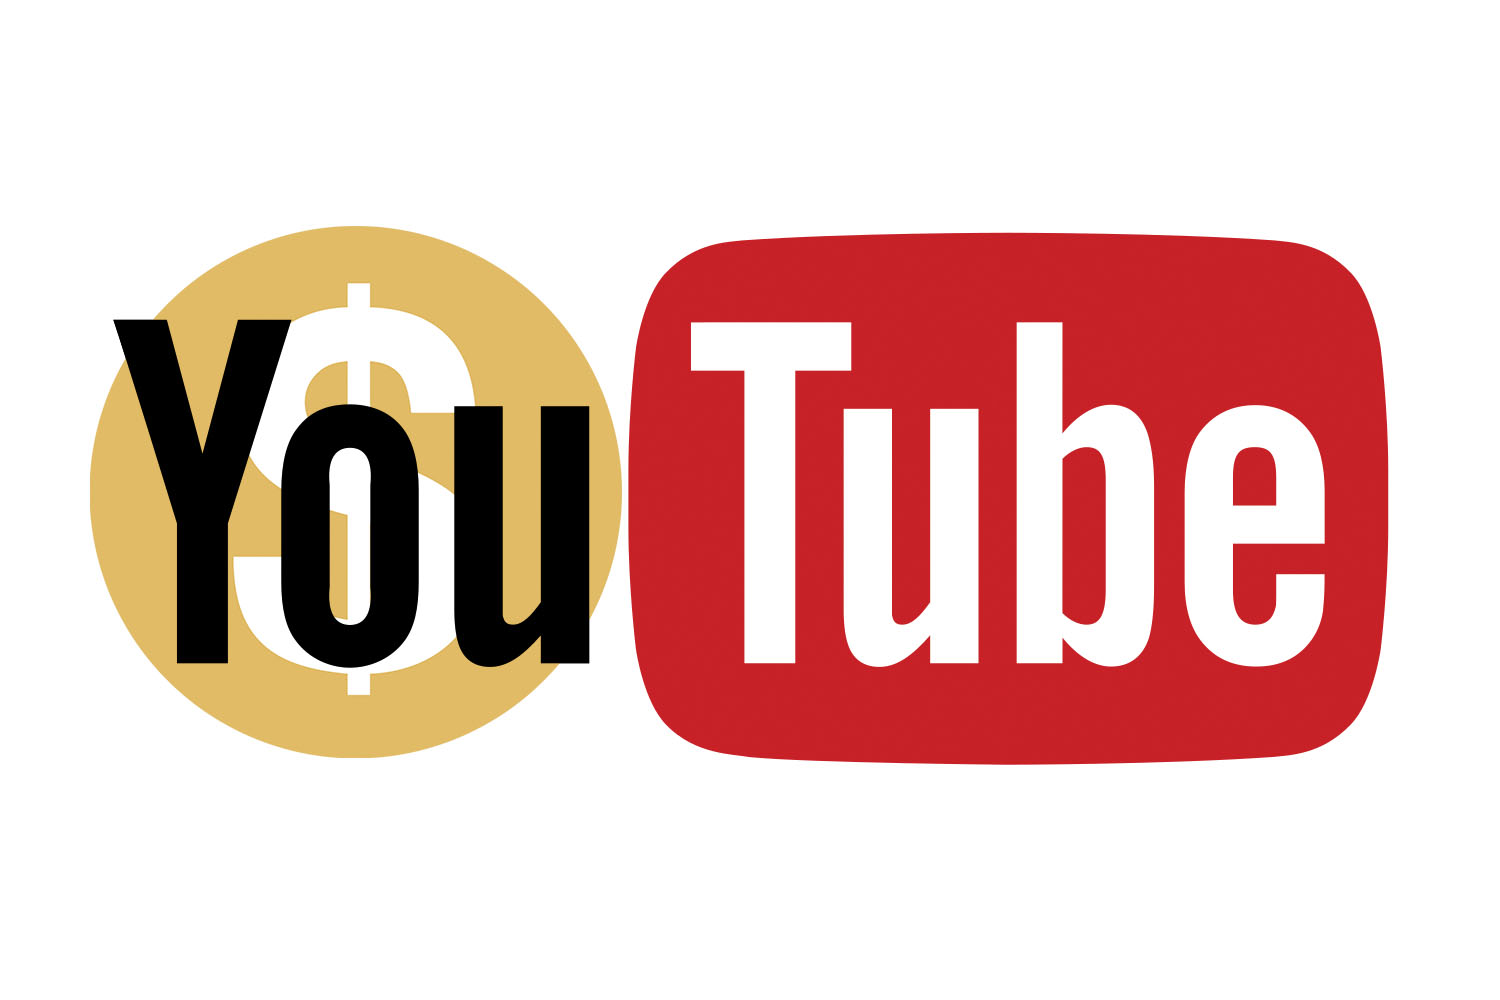 Content creators' revenue are primarily based on ads, making them vulnerable to the criteria set by advertisers. This means that creators have to avoid words that aren't advertiser-friendly.